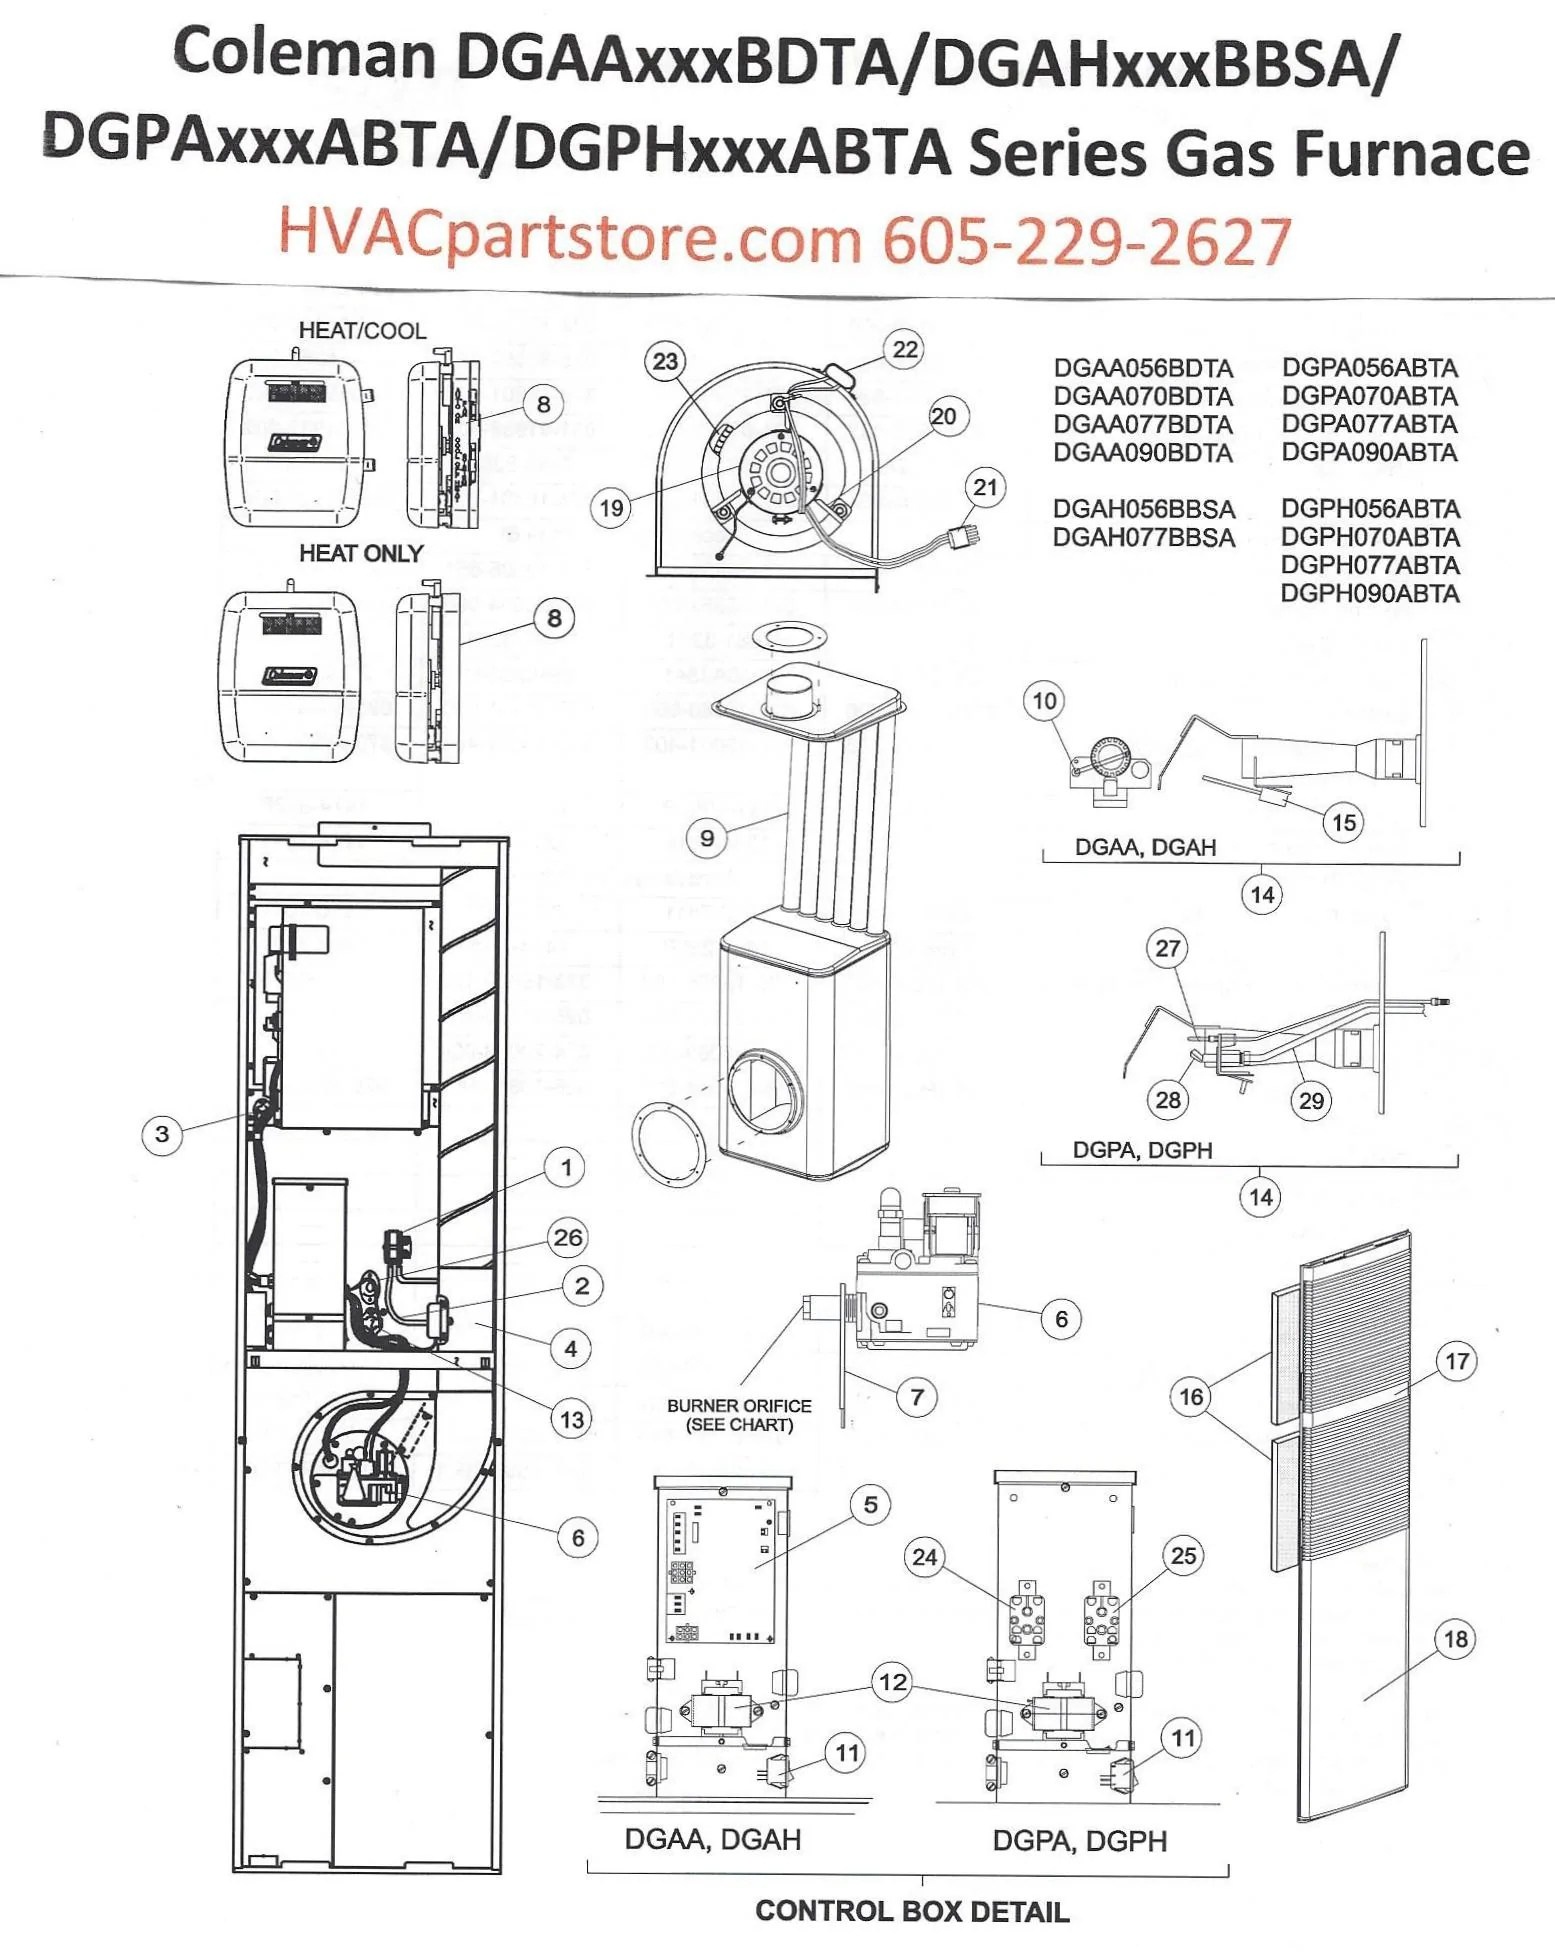 click here to view a manual for the dgaa056bdta which includes wiring diagrams  [ 1555 x 1955 Pixel ]